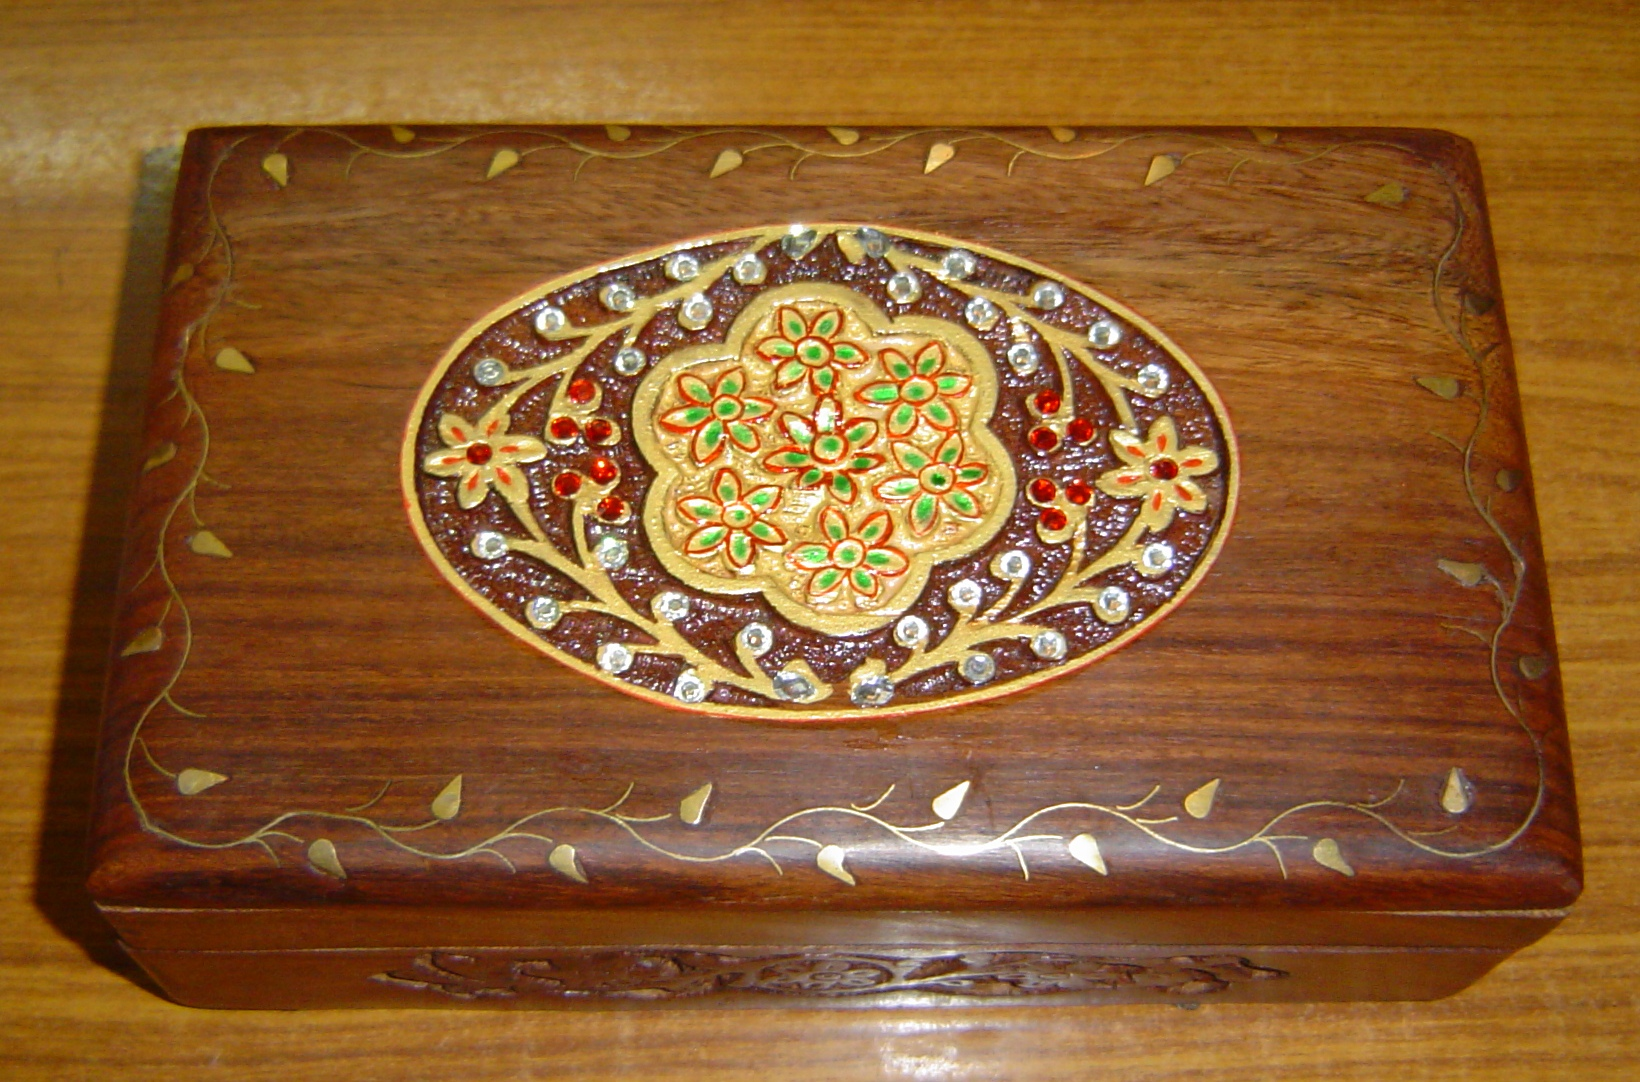 130031 Sheesham Wood carving and decorative box